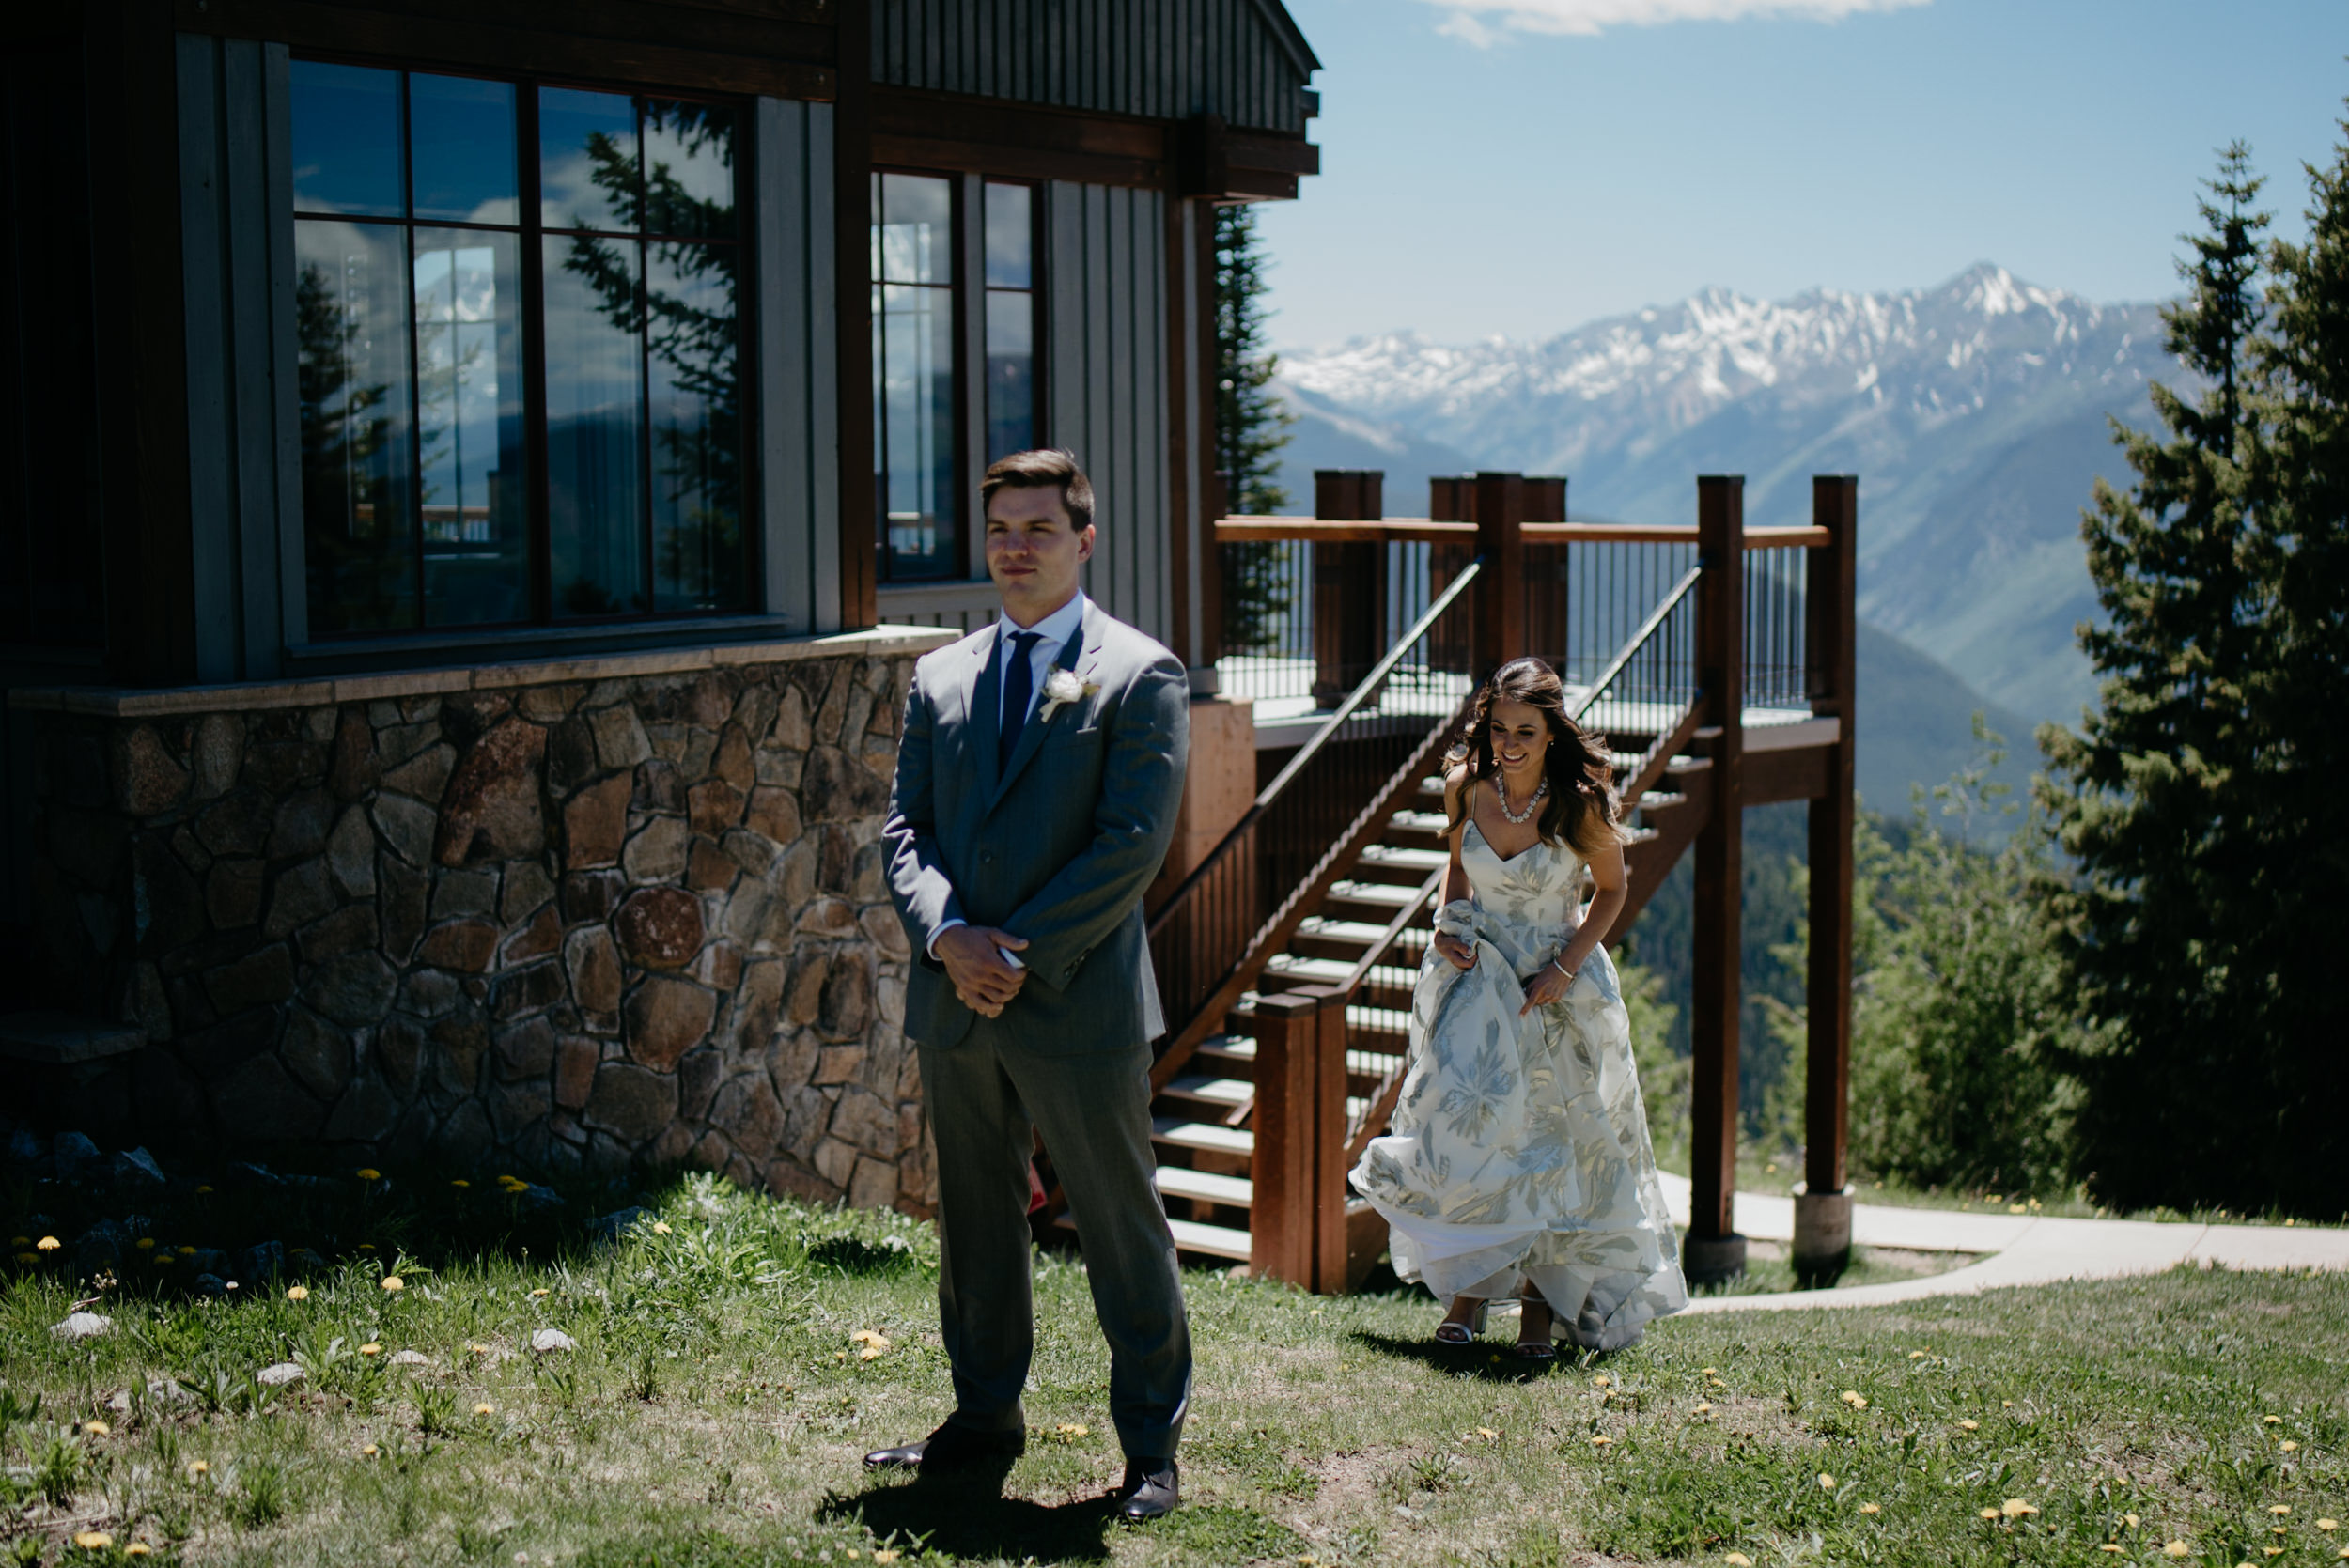 The Little Nell wedding in Aspen, CO. First look with bride and groom.